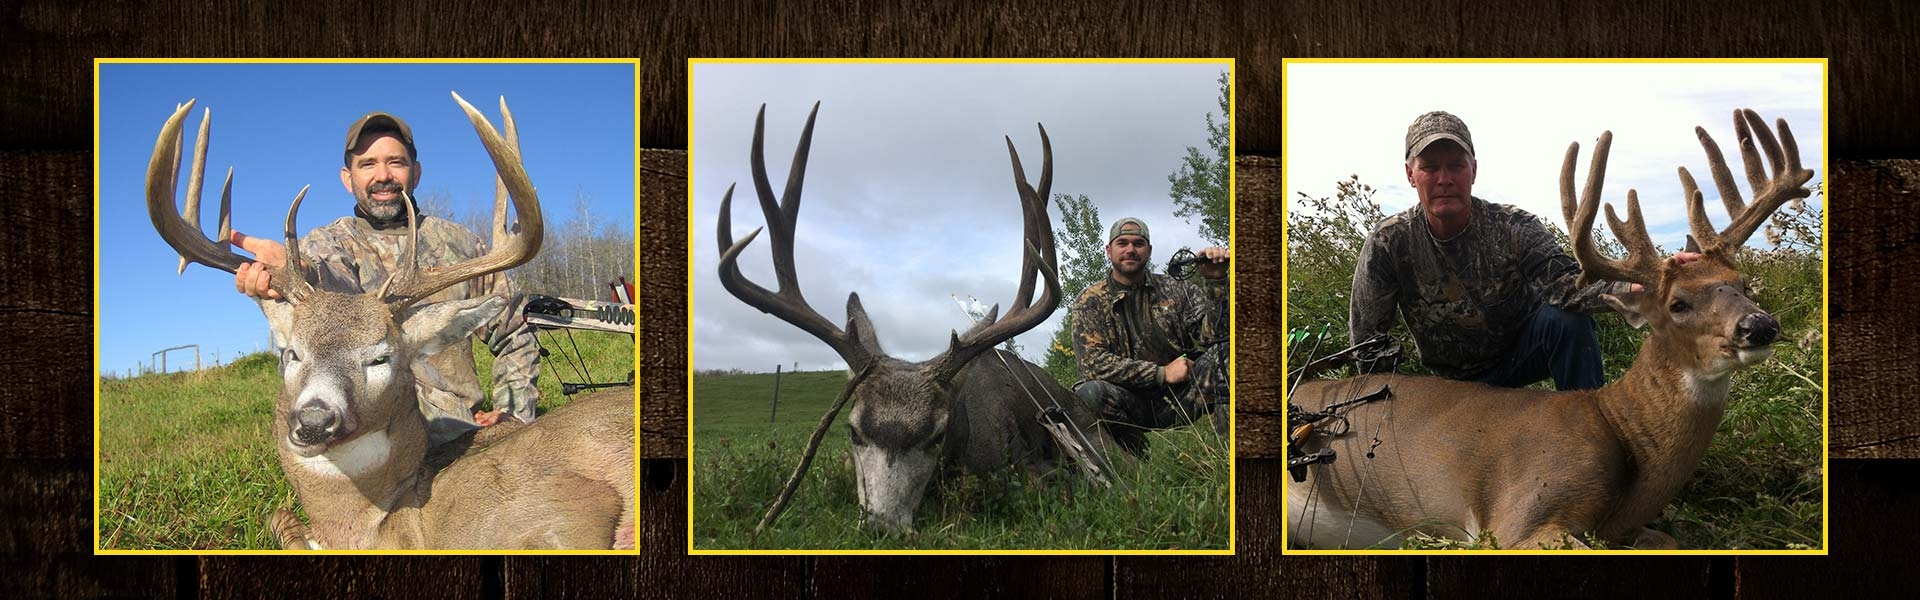 Archery Mule & Whitetail Deer in Alberta